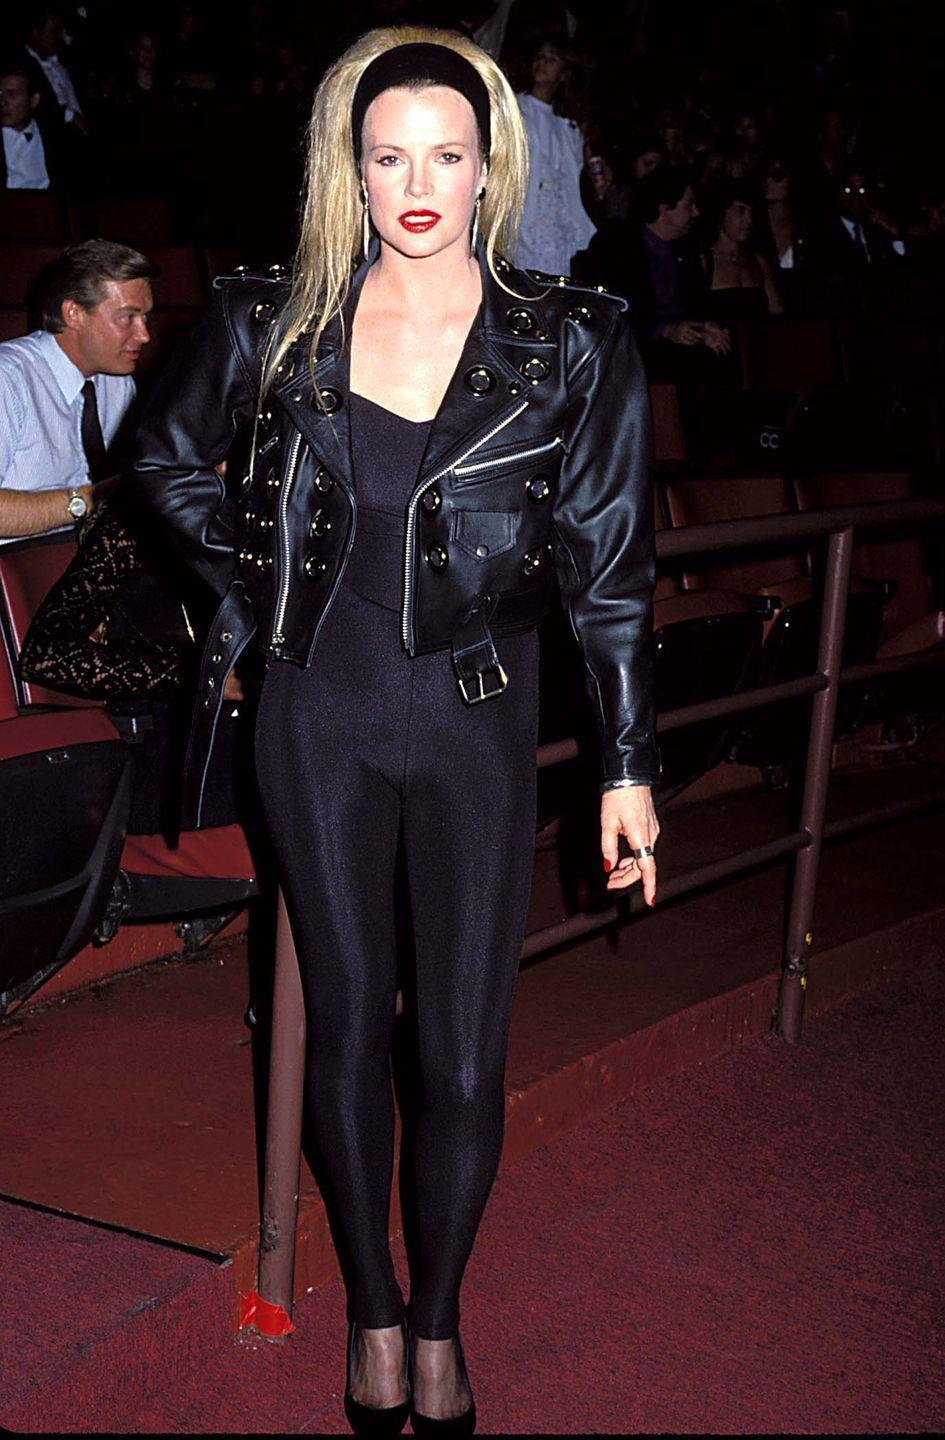 <p>Kim Basinger is sporting major Sandy from <em>Grease</em> vibes on the red carpet in 1990. The leather look was verrrry in for the start of the '90s. </p>